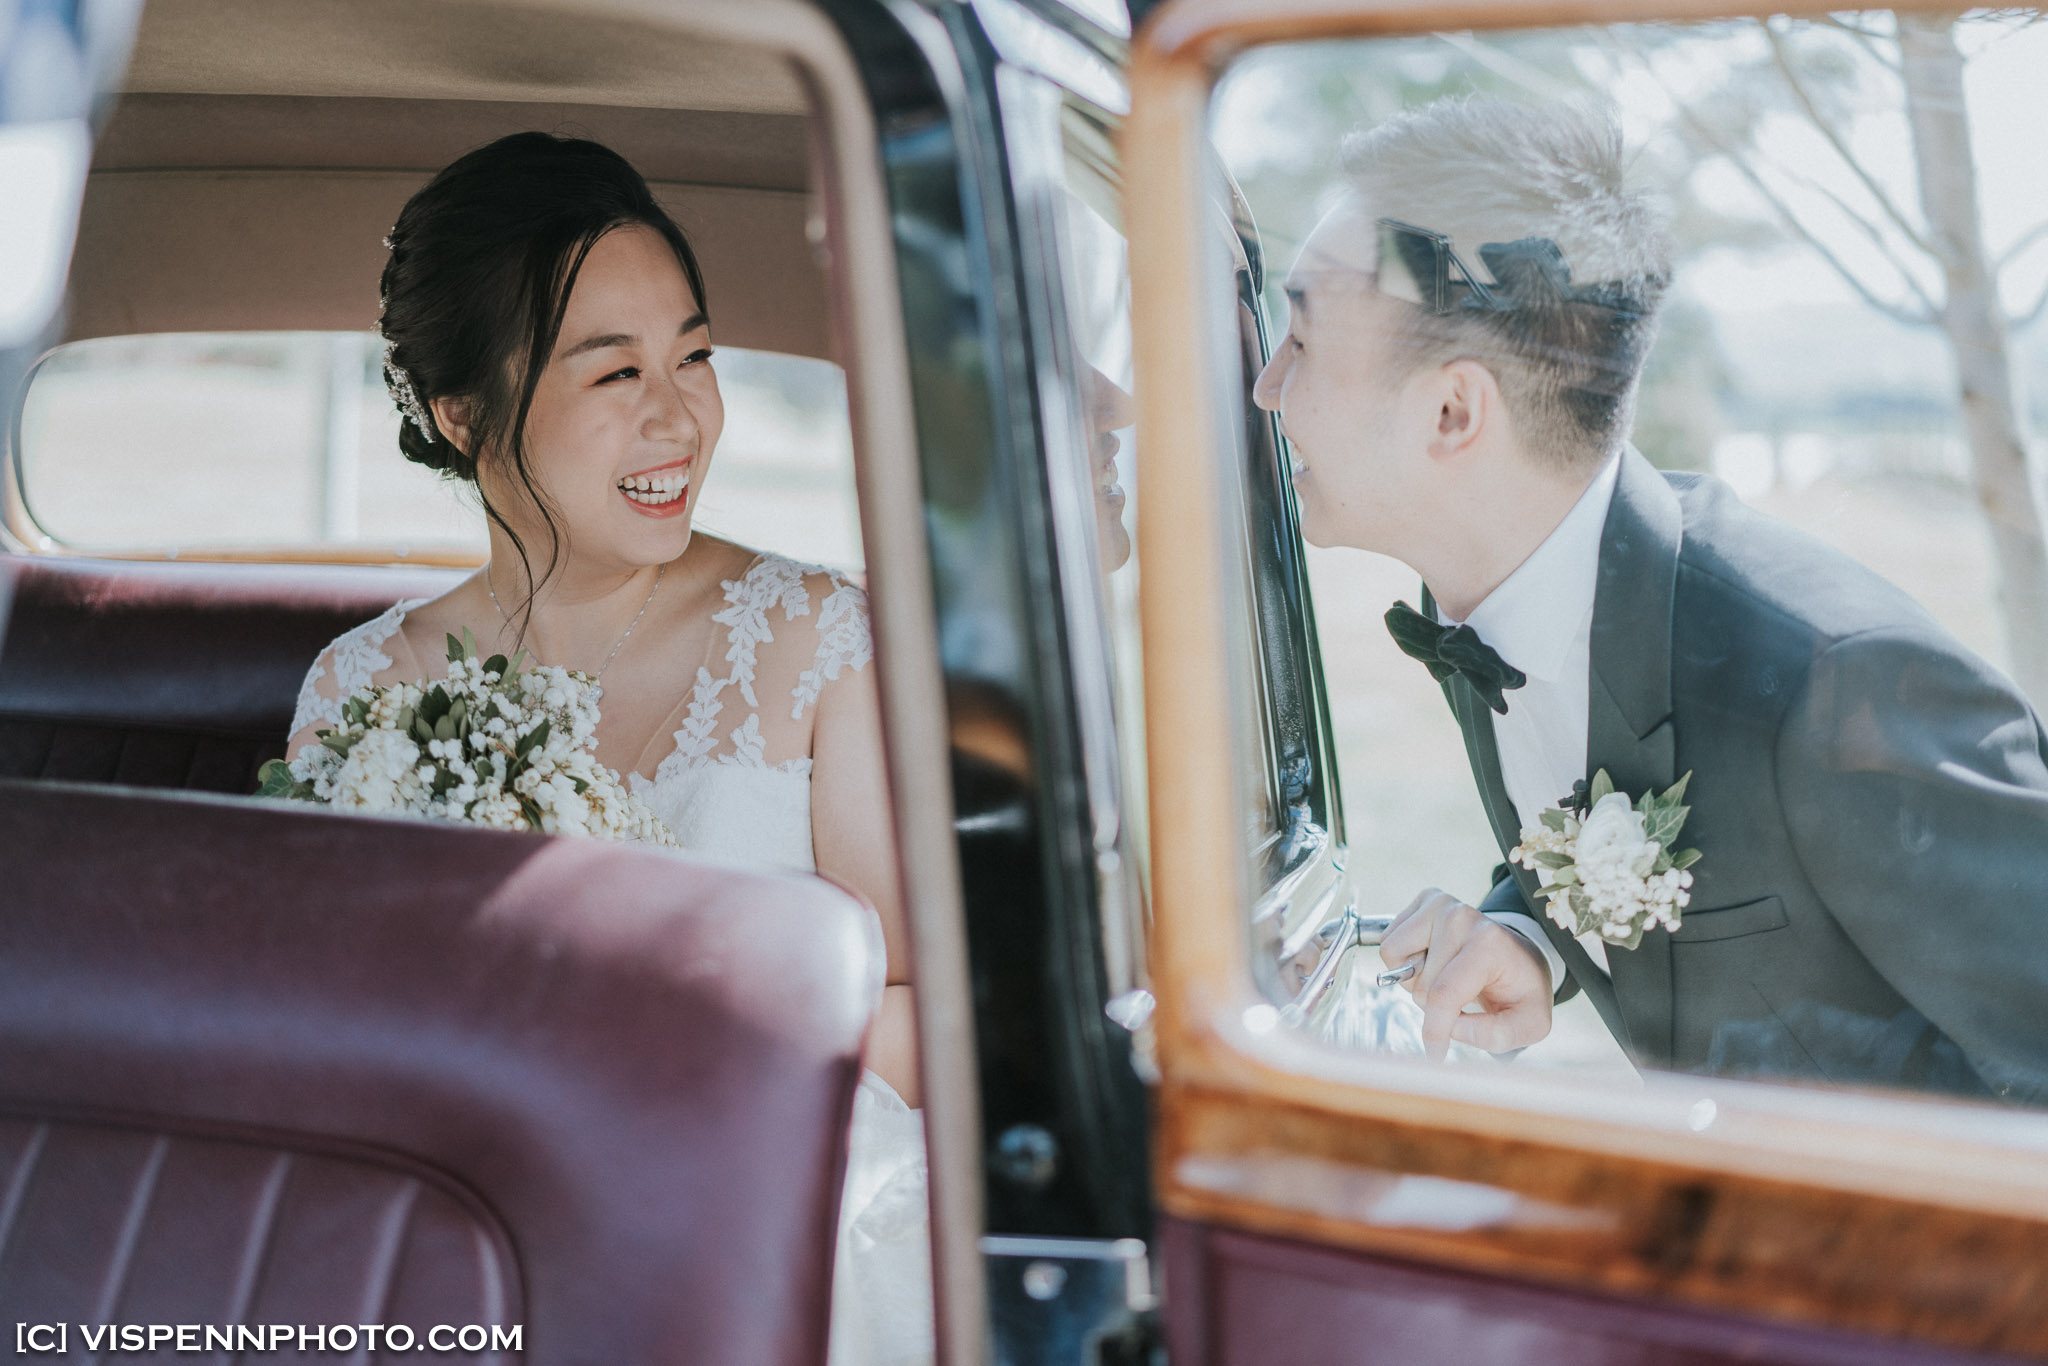 WEDDING DAY Photography Melbourne LeanneWesley 02699 4H A7R3 ZHPENN